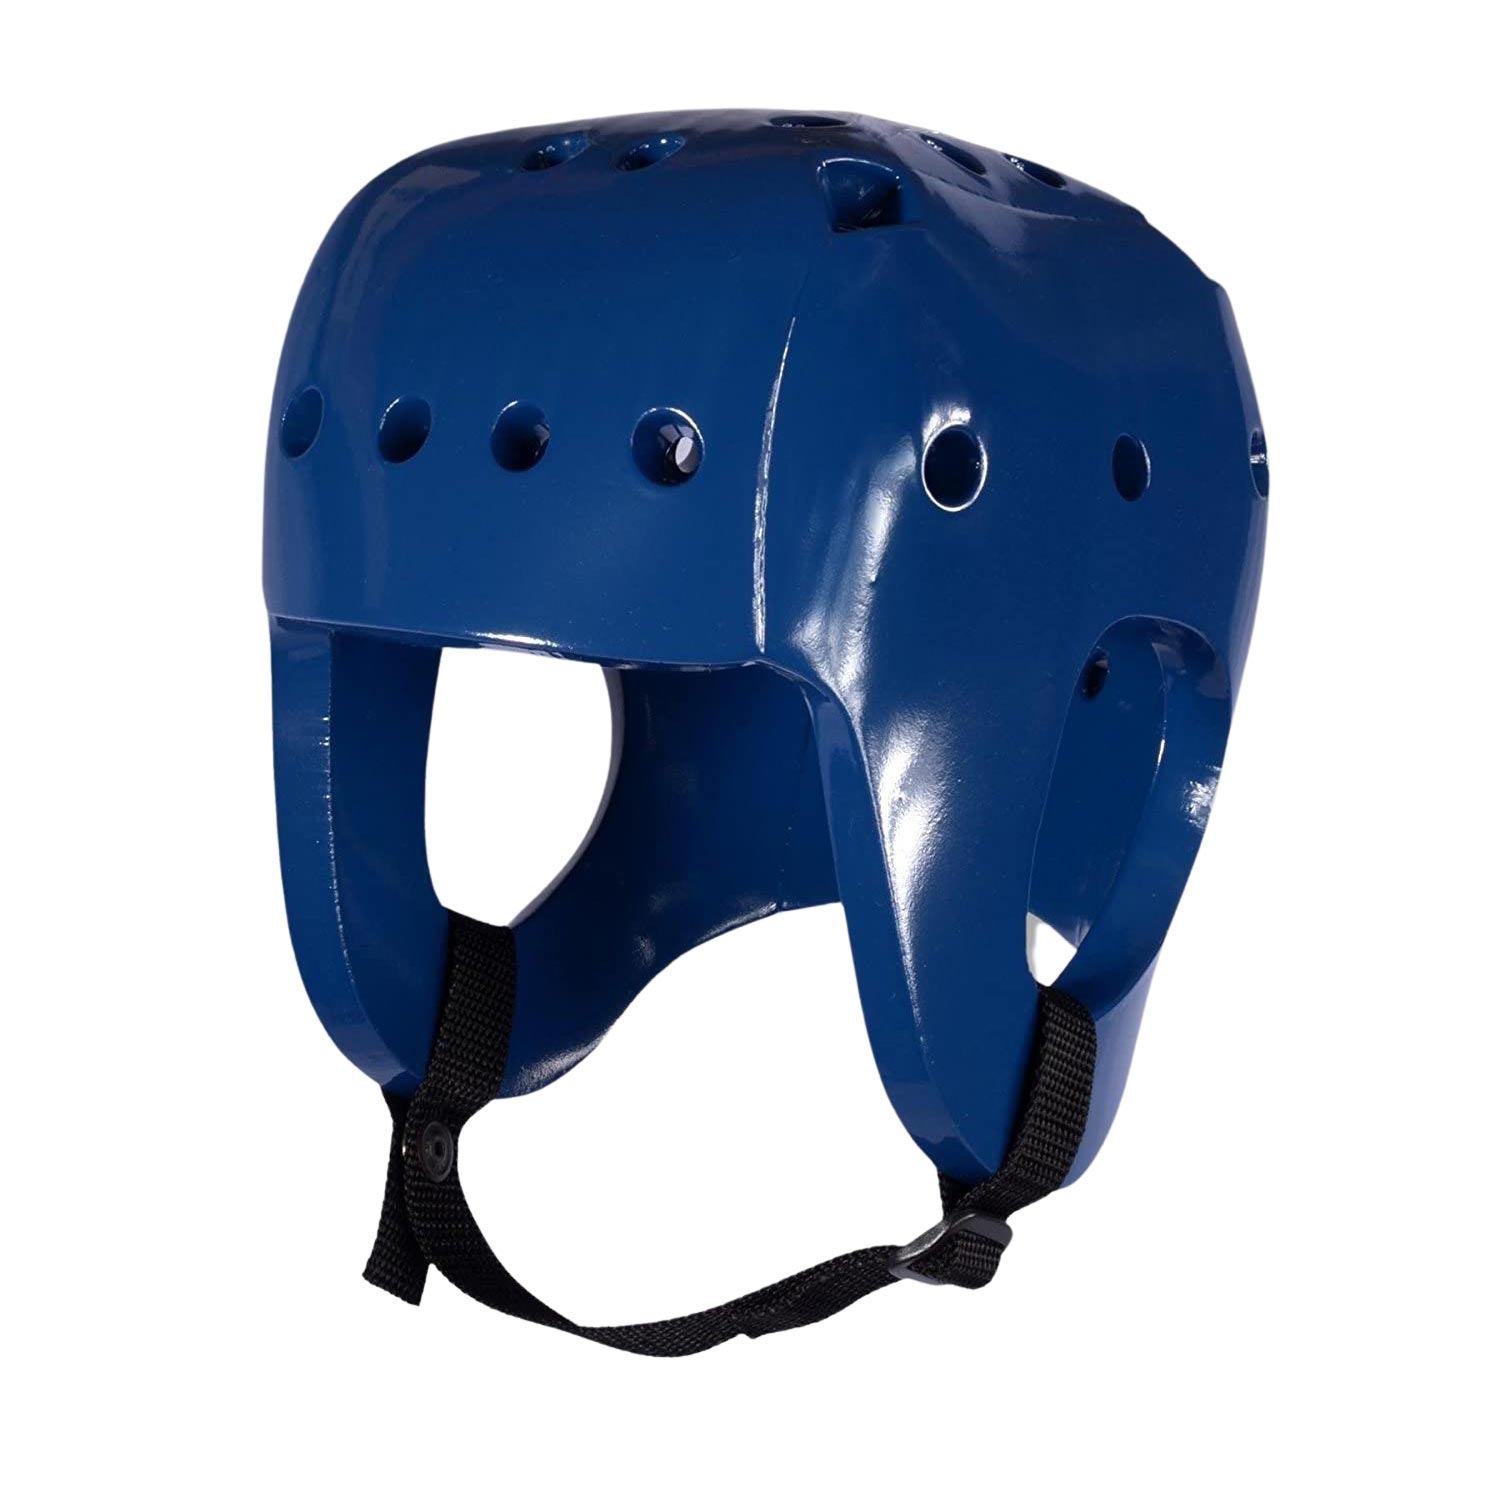 Danmar full coverage helmet